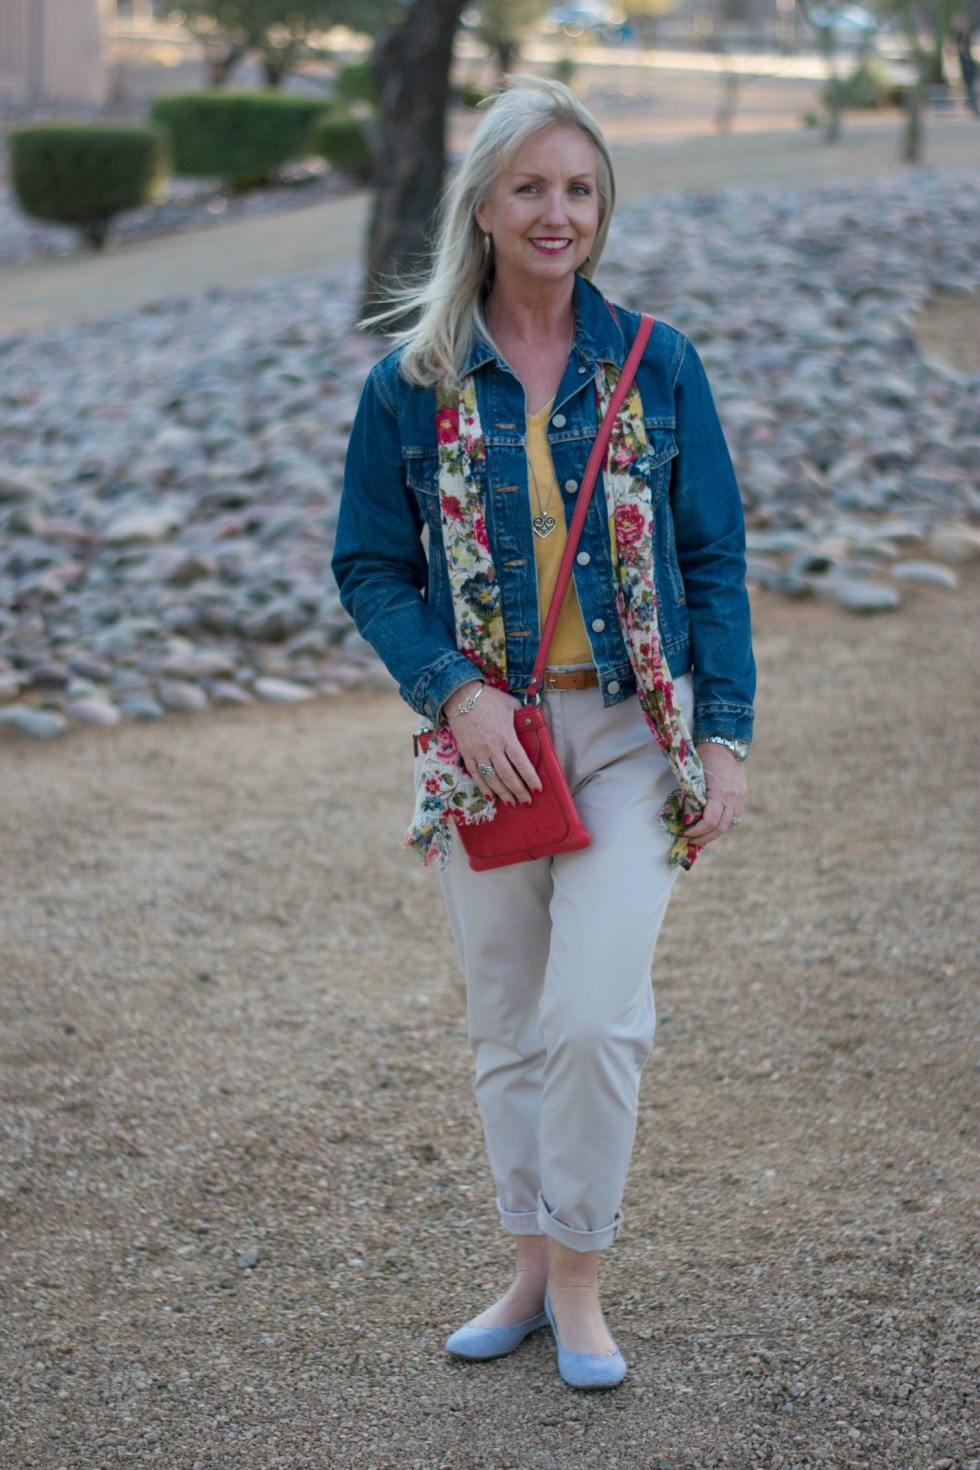 Weekend Chinos from Talbots with Denim Jacket and Colorful Scarf